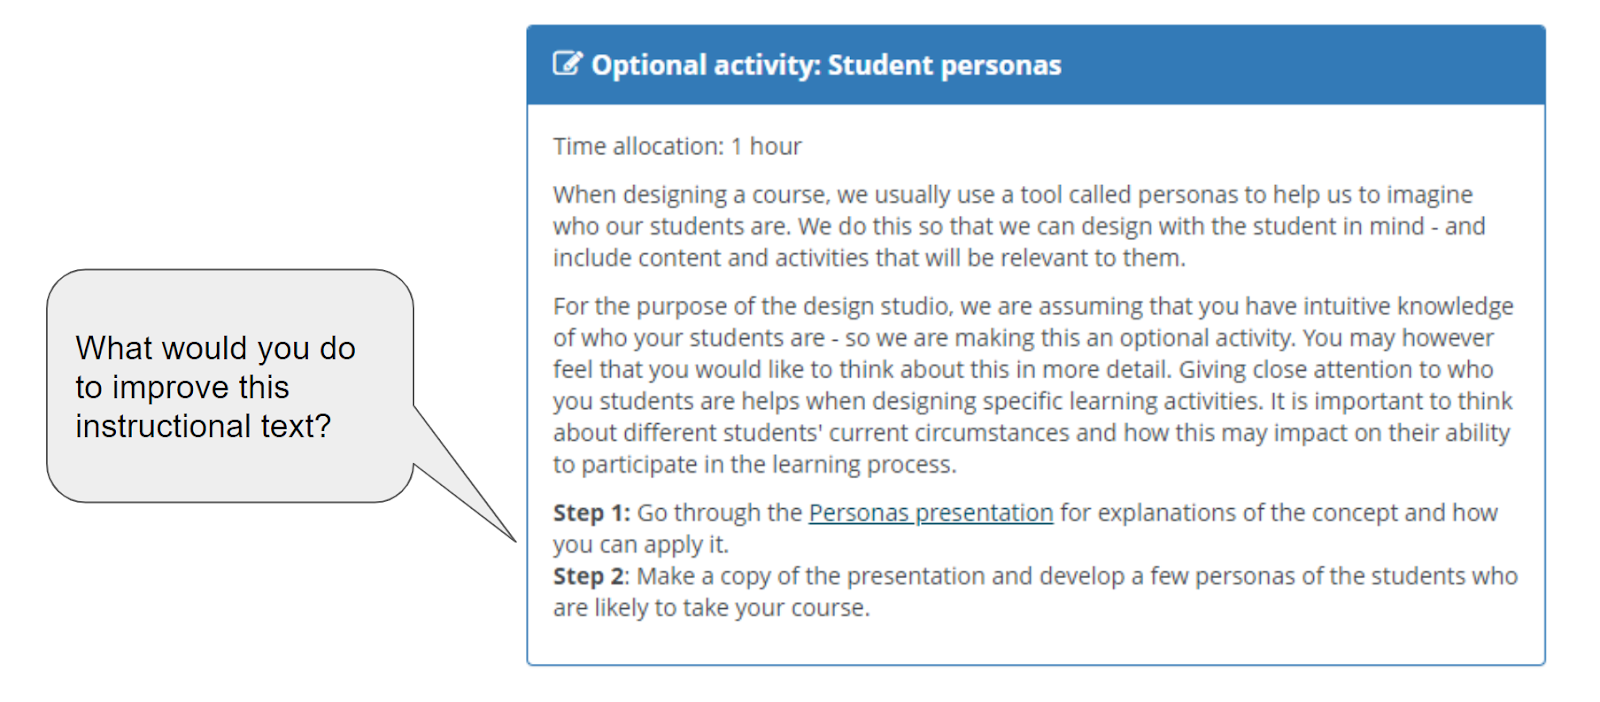 Image showing instructional text in a learning activity.